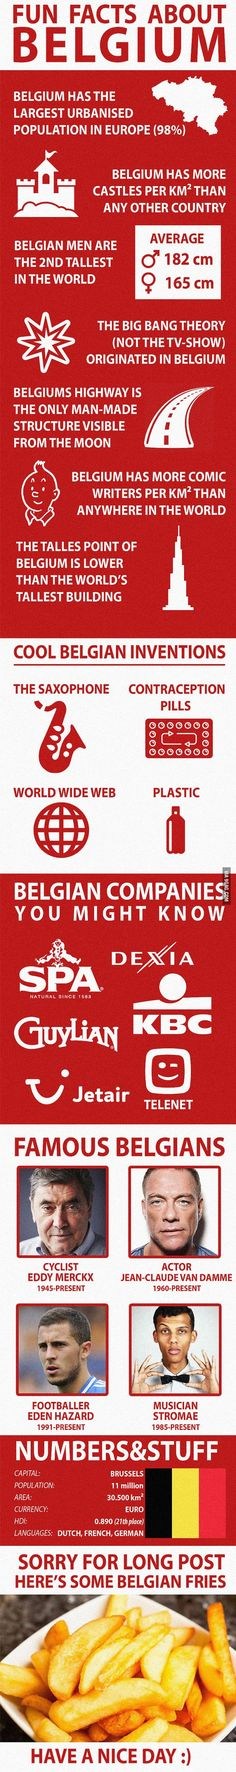 Fun Facts about Belgium